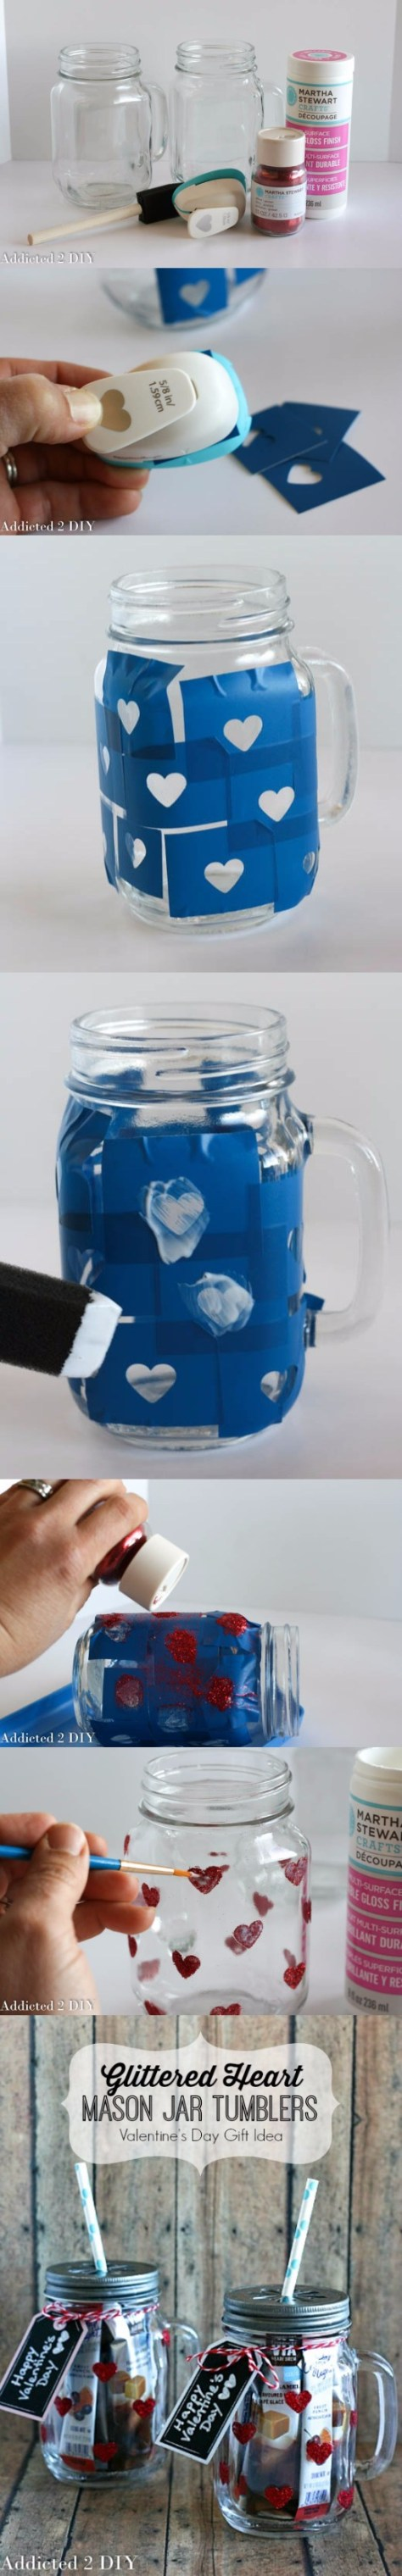 Glittered Heart Mason Jar Tutorial